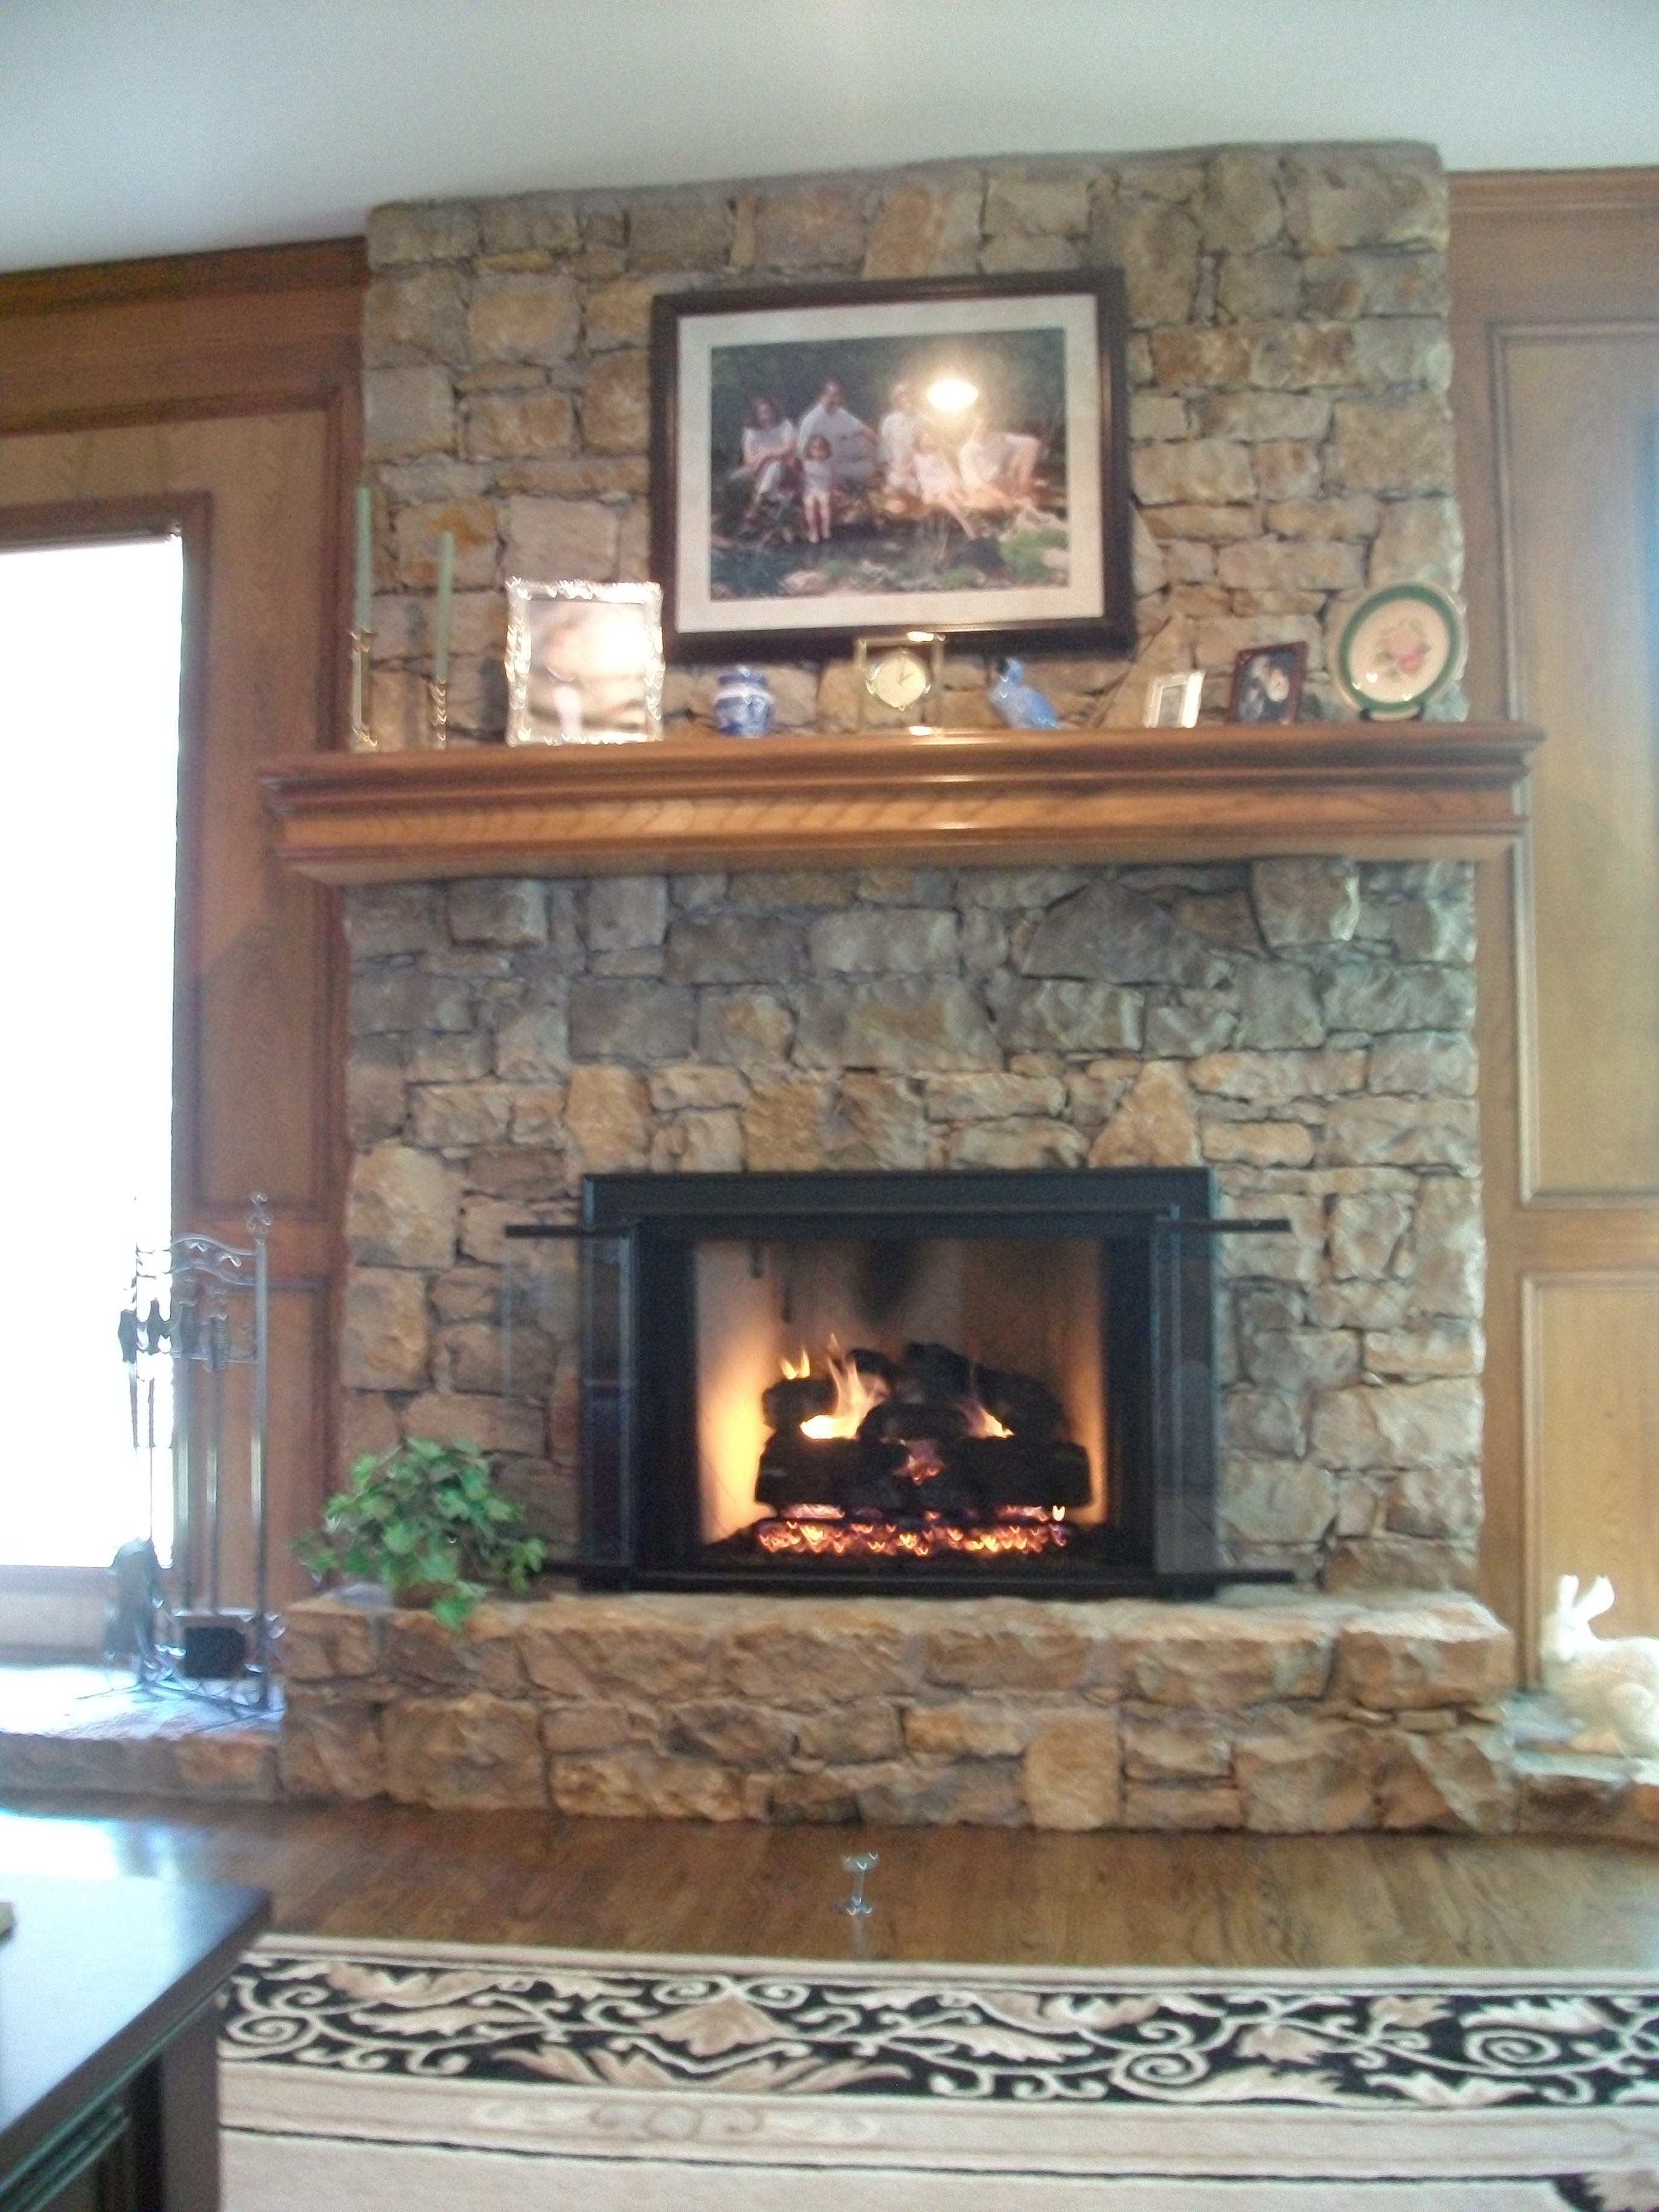 Rumford fireplace with black frame and natural stone mantel kit matched with wooden floor for heat warming decor ideas